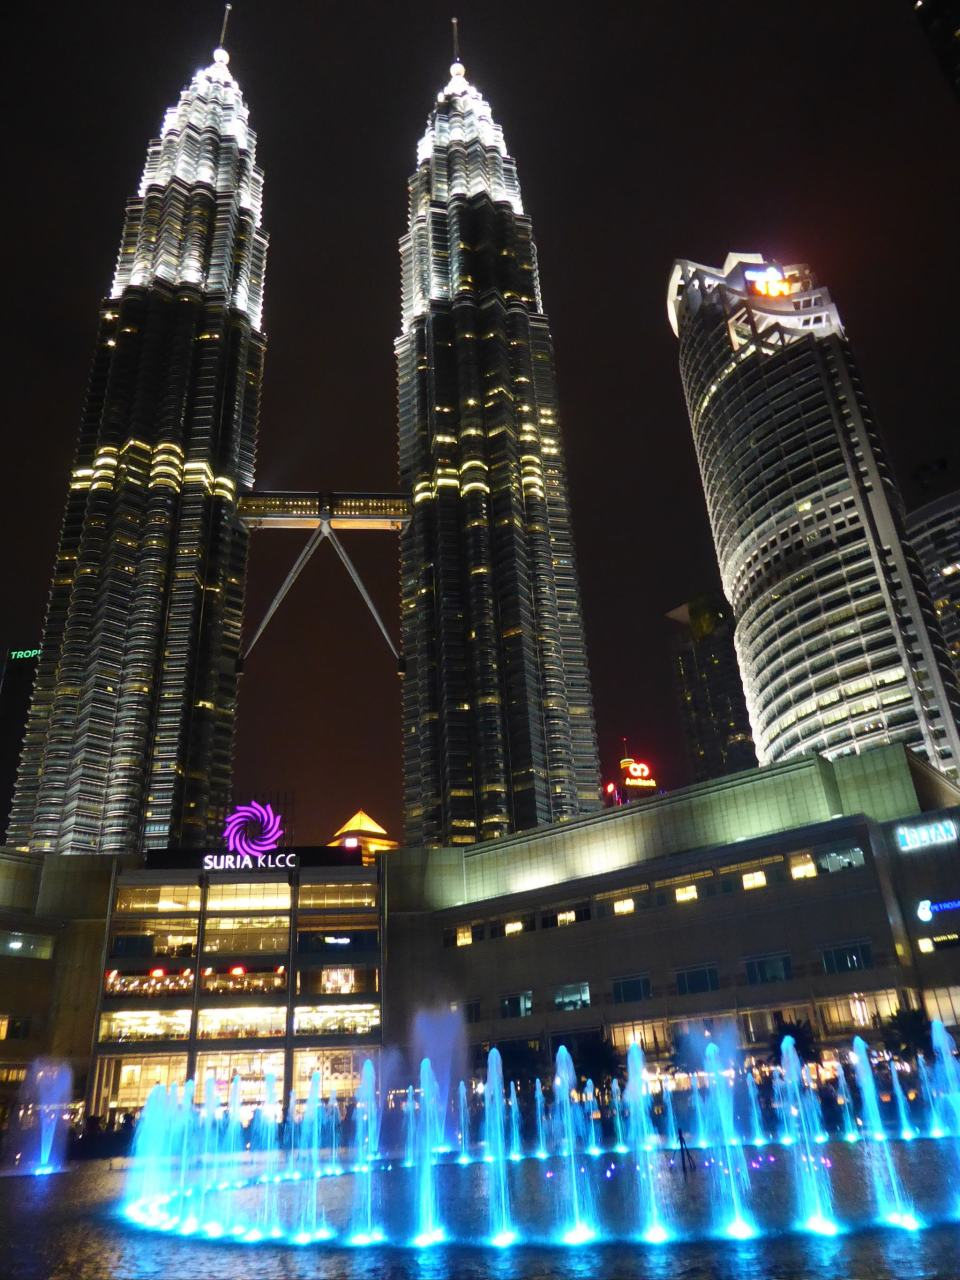 Petronas Twin Towers at night. A must see on any Peninsular Malaysia Itinerary